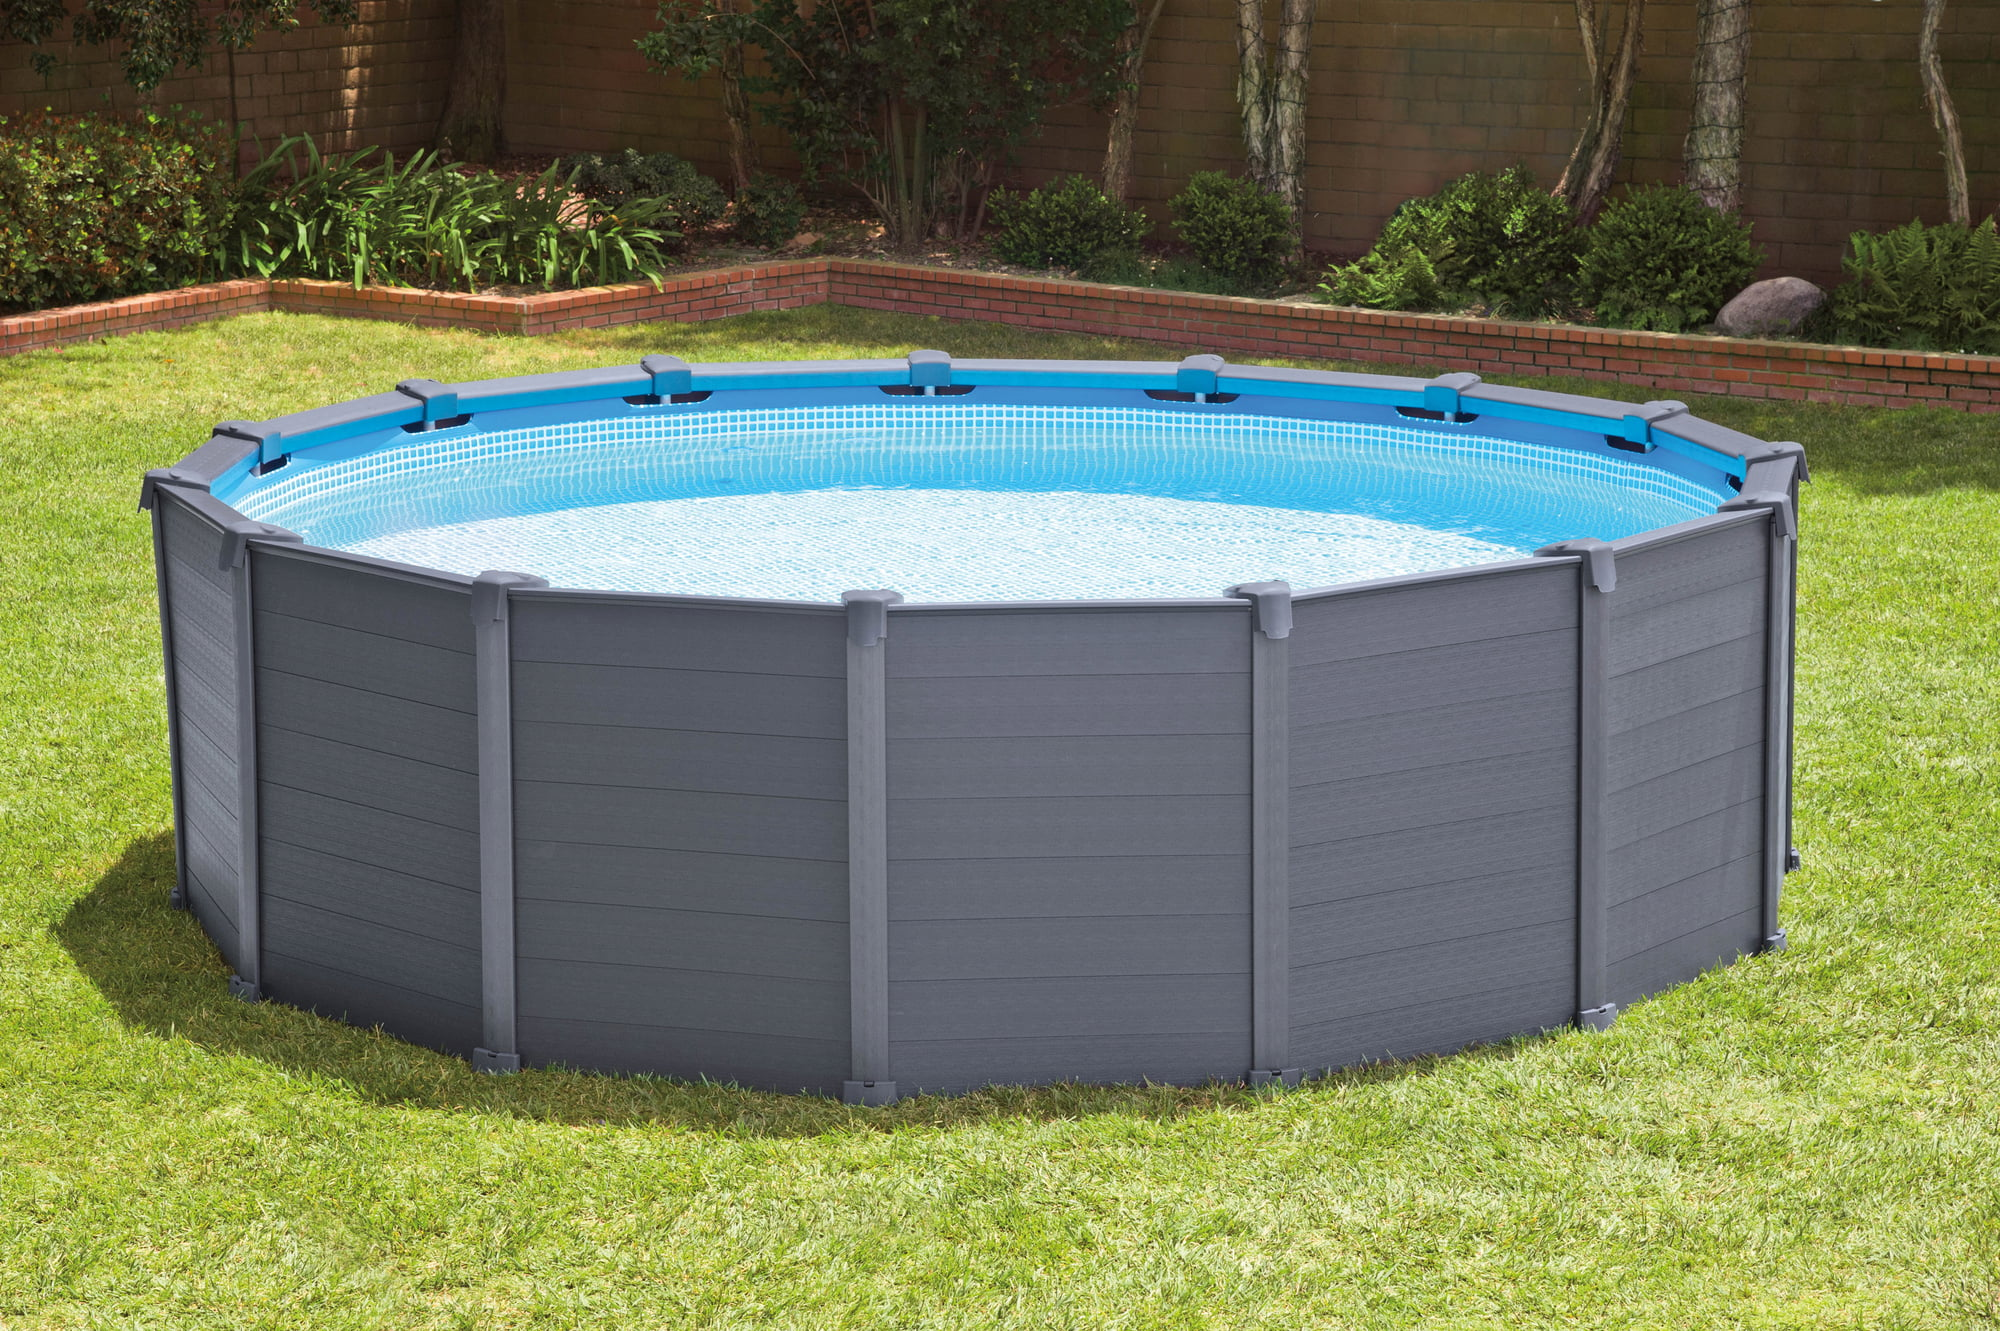 Pool Komplettset Mit Sandfilteranlage Test Intex Frame Pool Graphit Ø 478 X 124 Cm